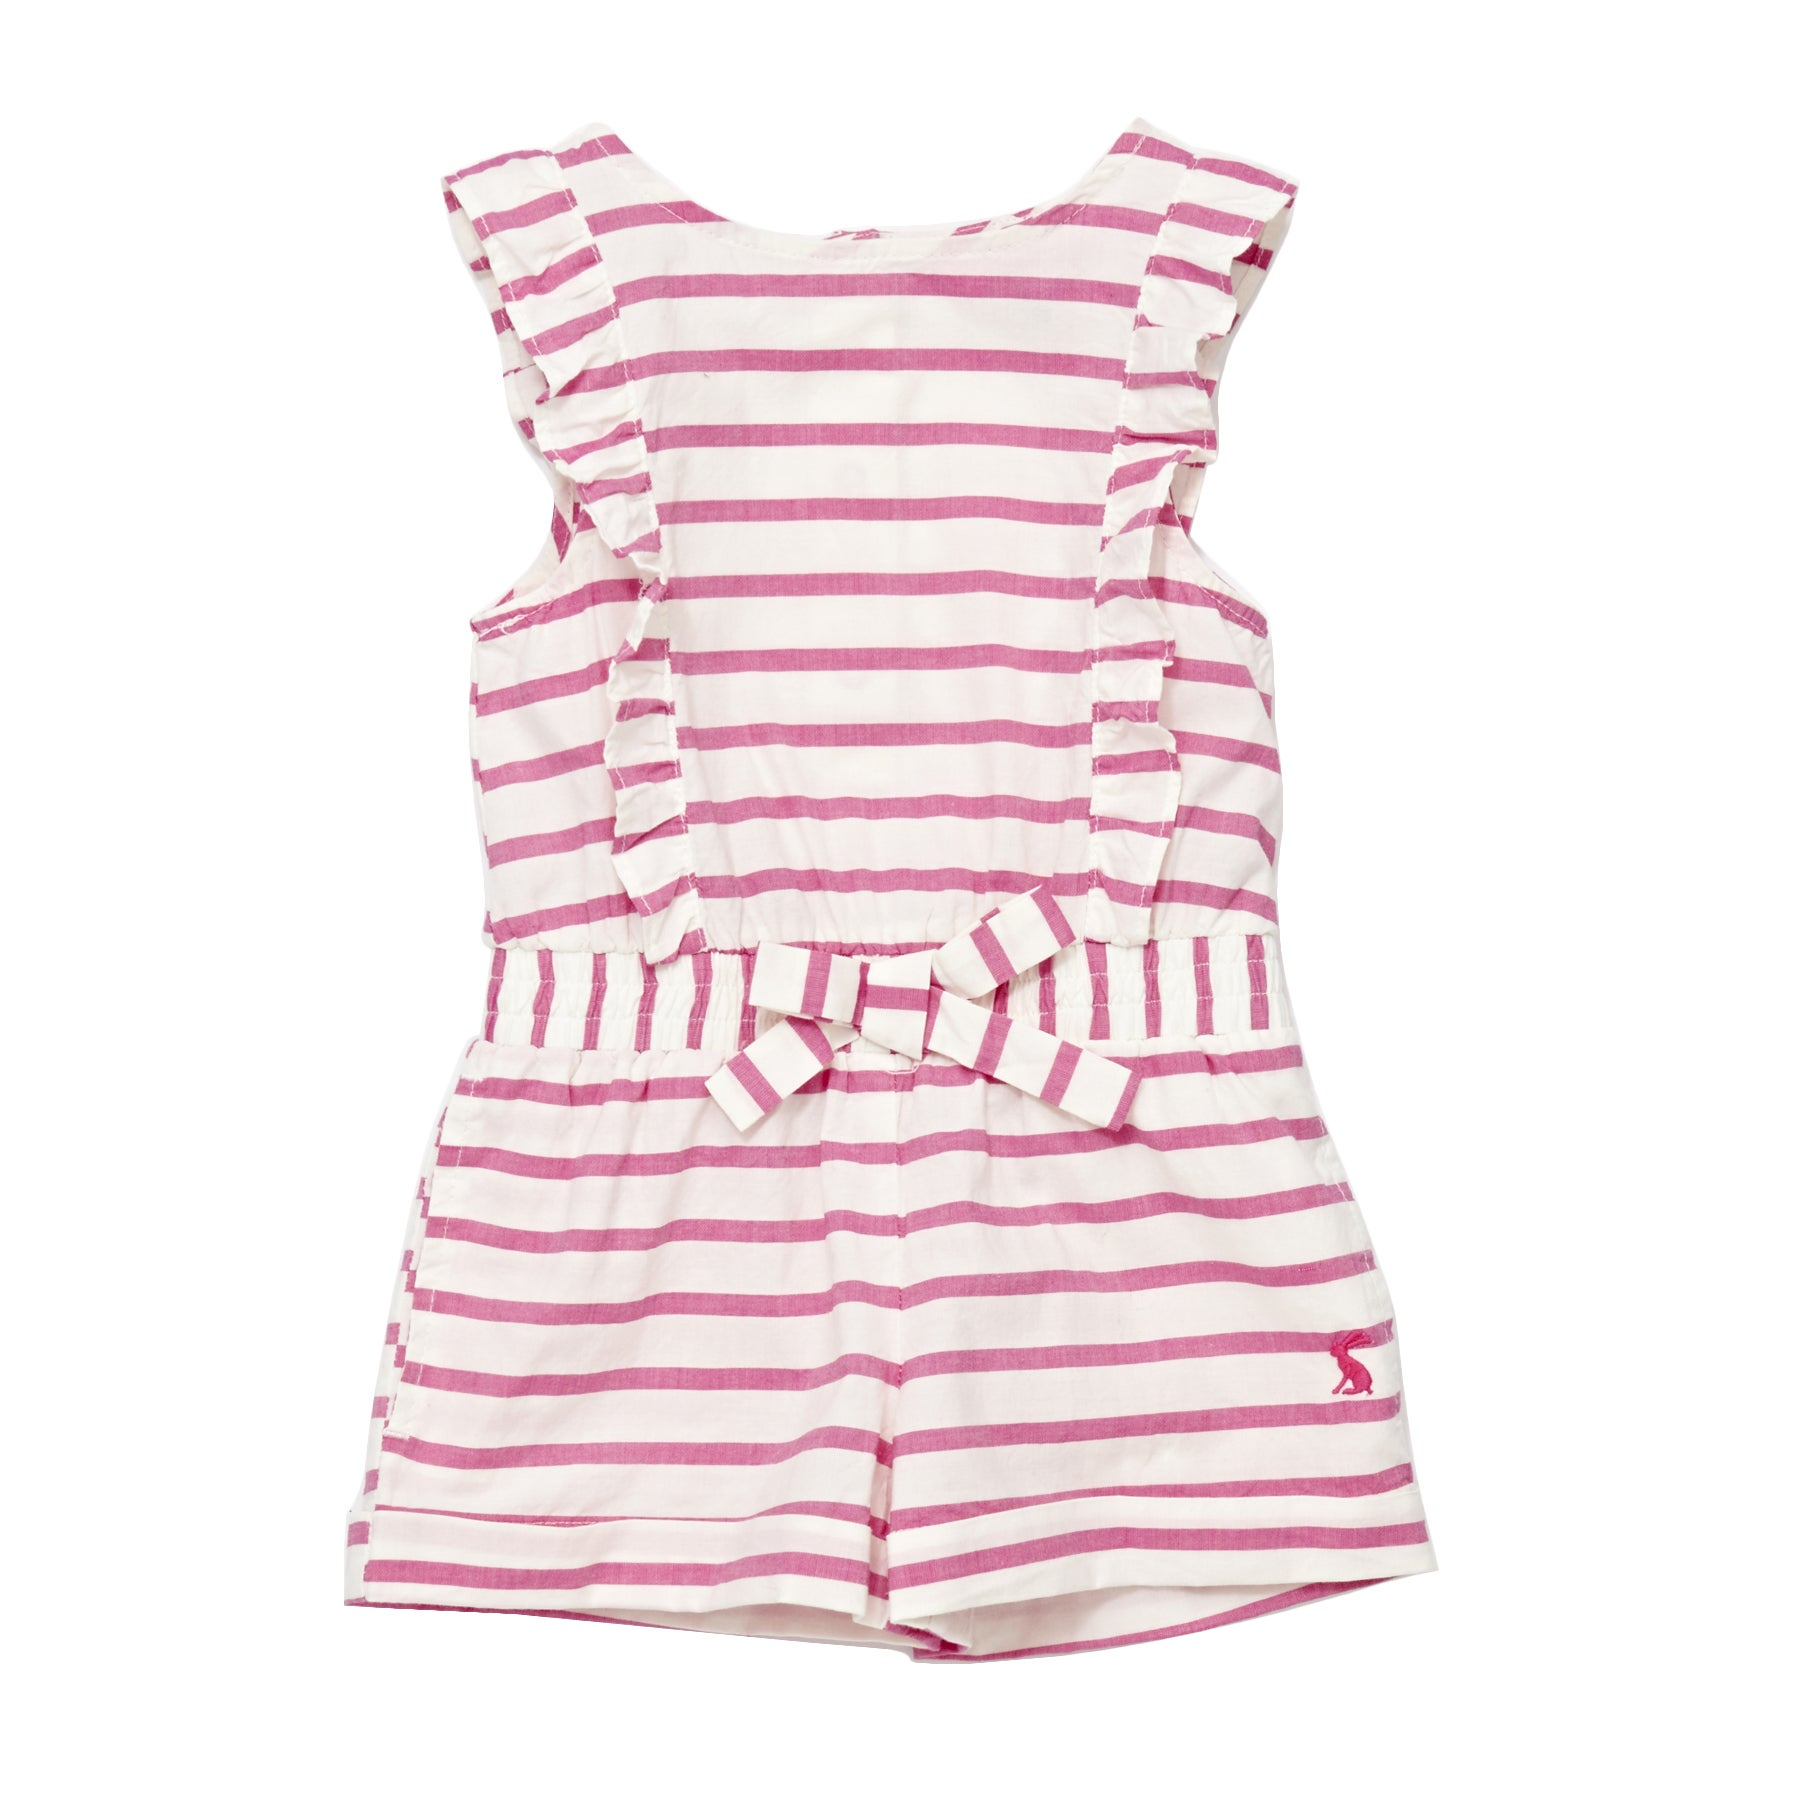 Joules Elle Girls Playsuit - Bright Pink Stripe